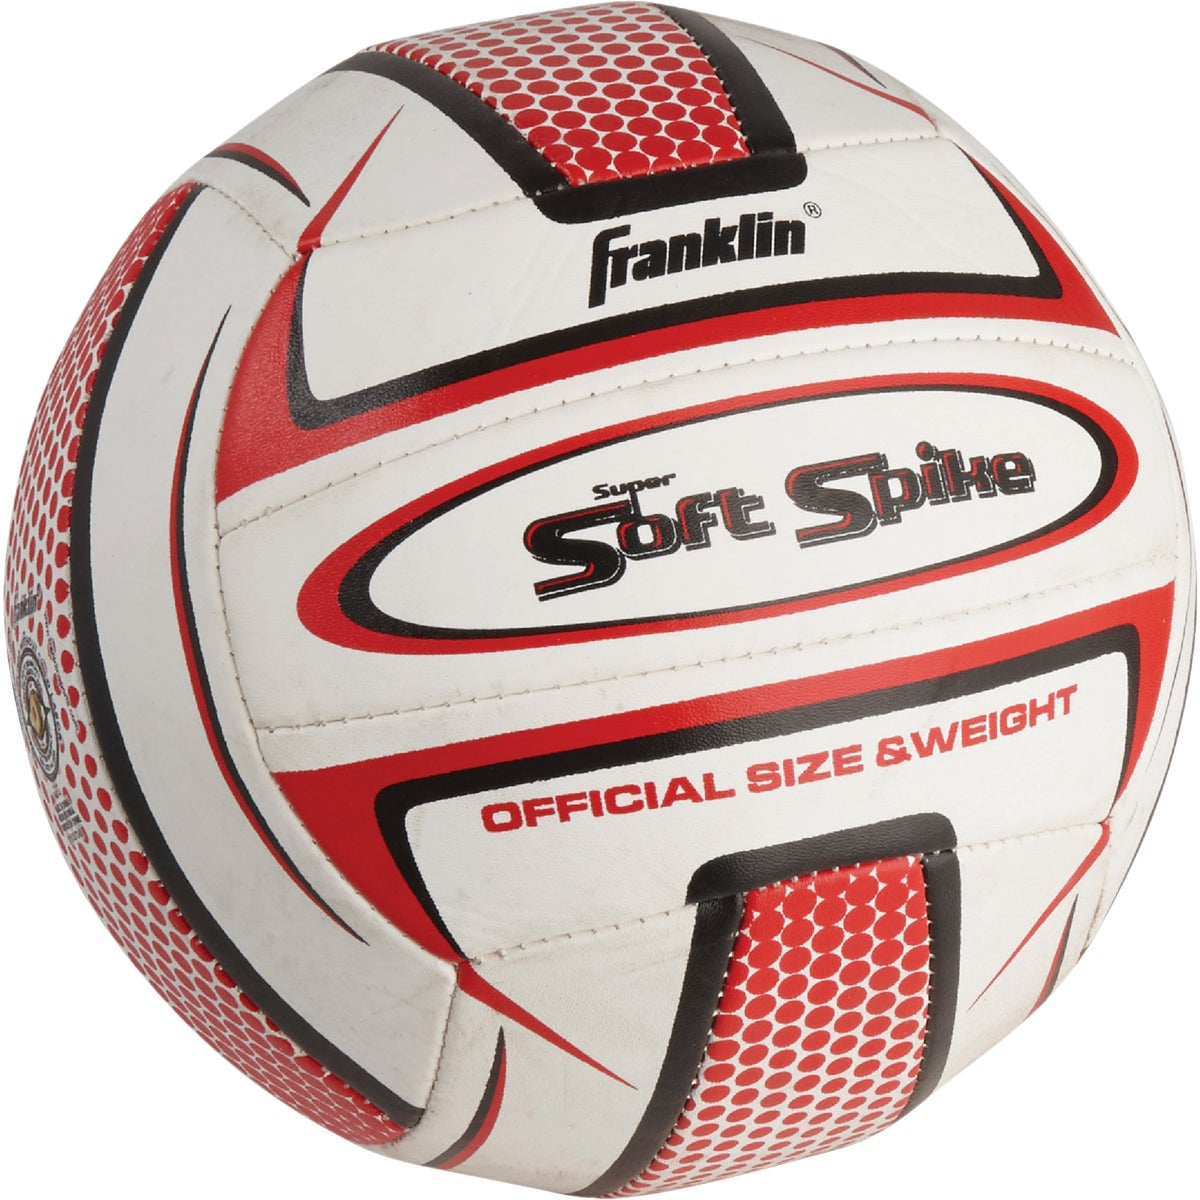 BEACH VOLLEYBALL - 5487 by Franklin Sports